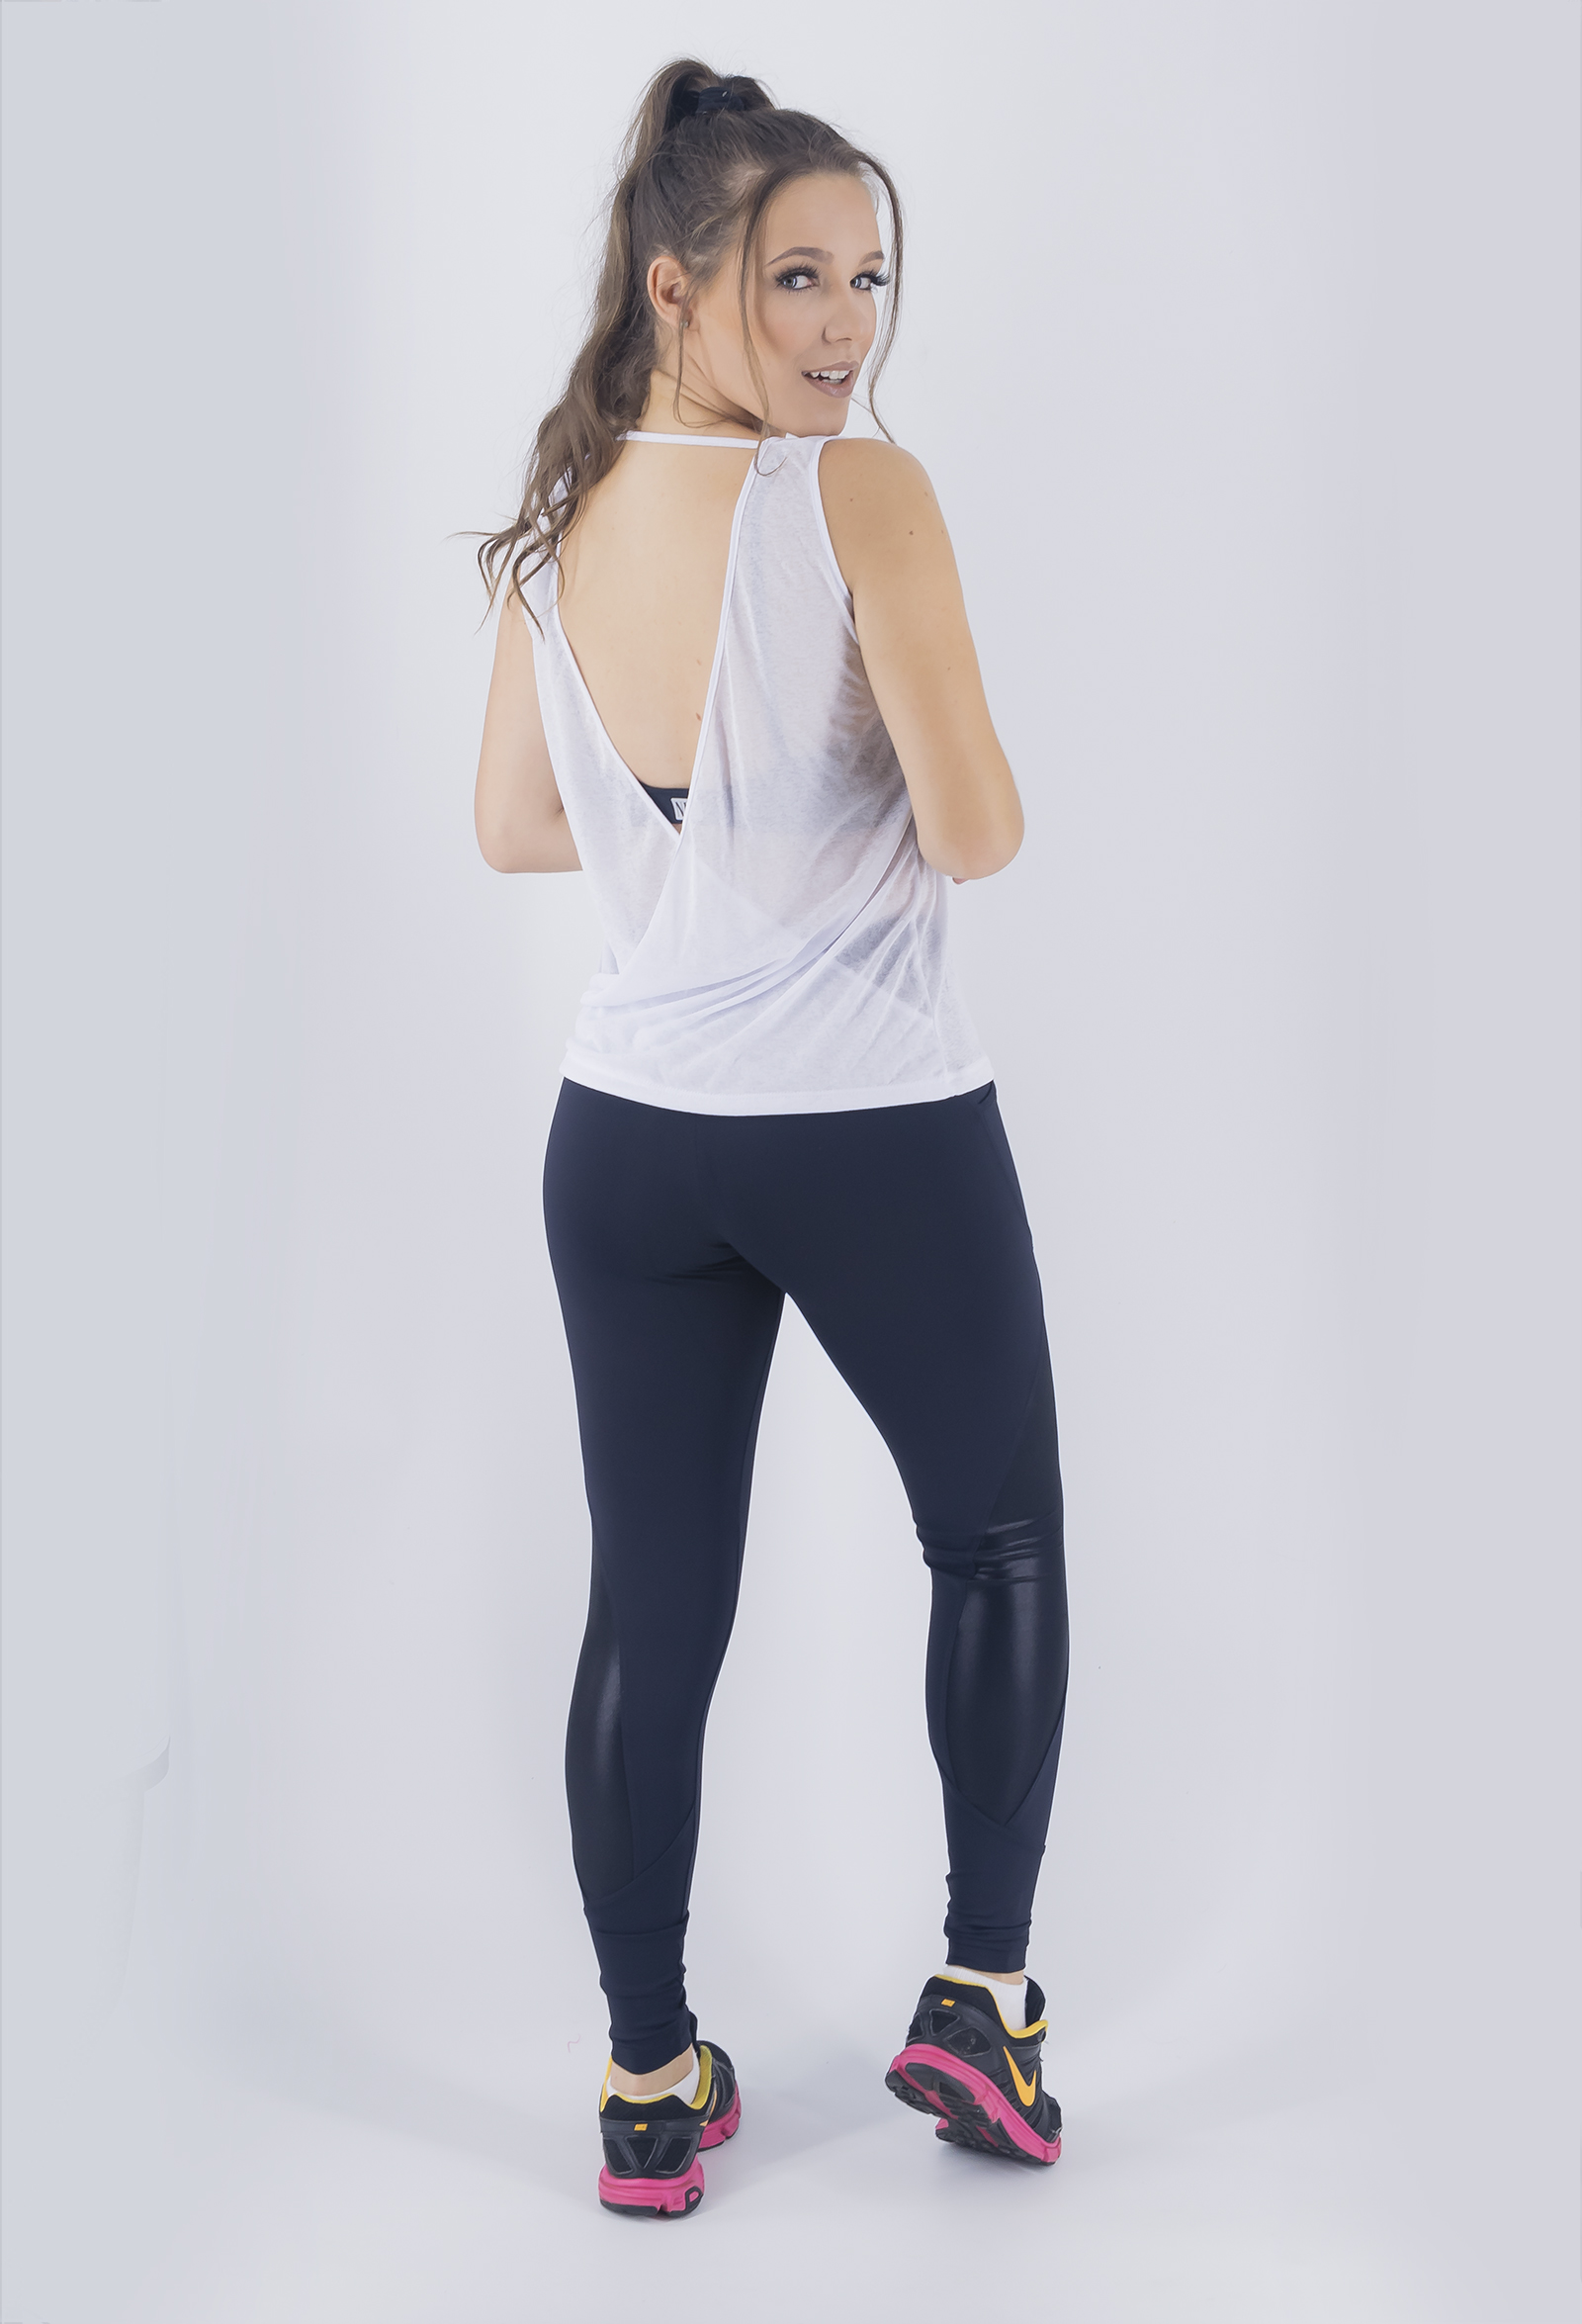 Regata Unique Branca, Coleção Just For You - NKT Fitwear Moda Fitness